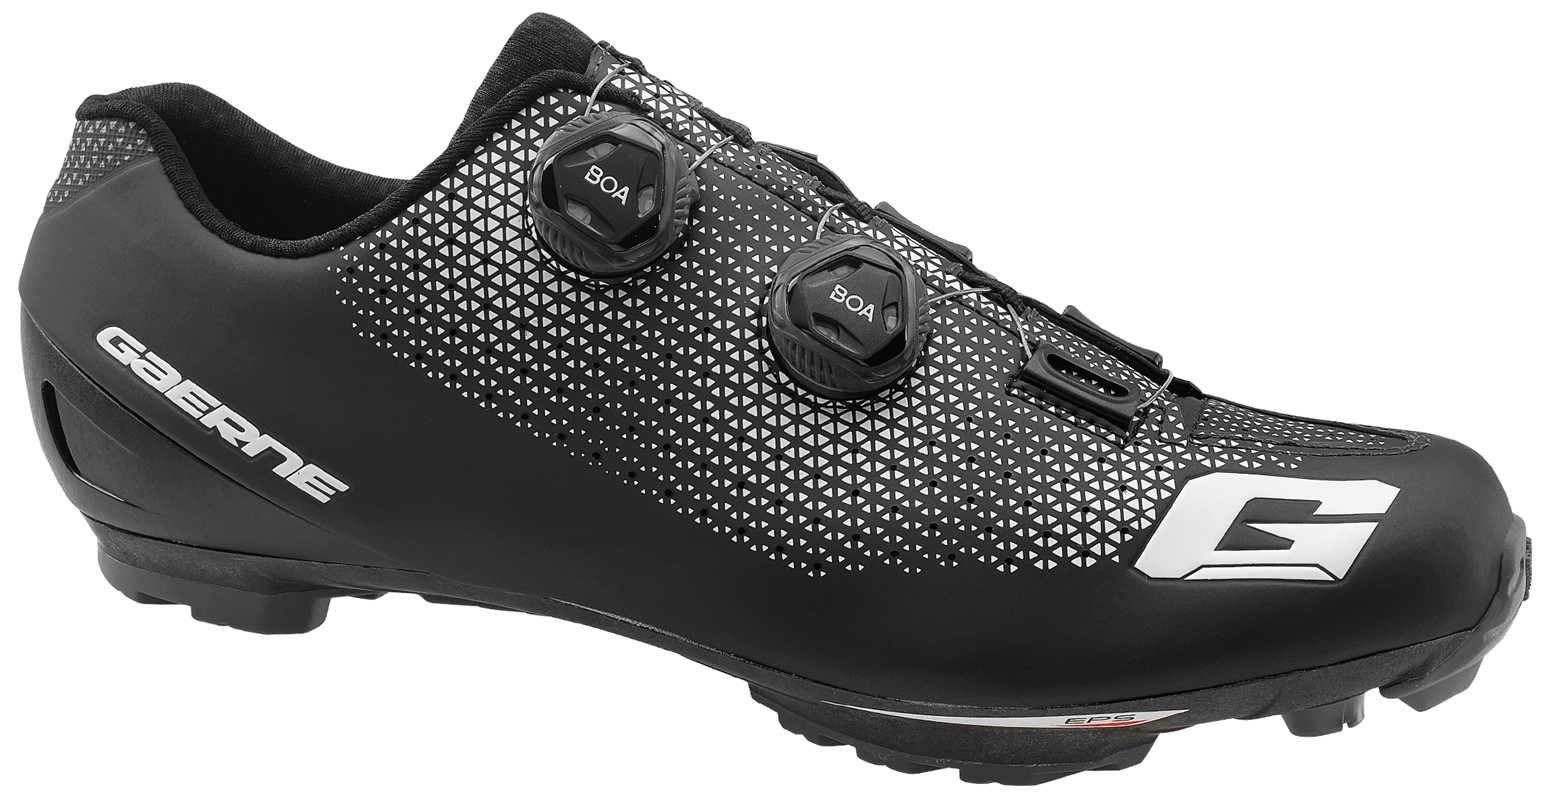 81a92ccc357f Gaerne Carbon Kobra+ MTB SPD Shoes | Shoes and overlays